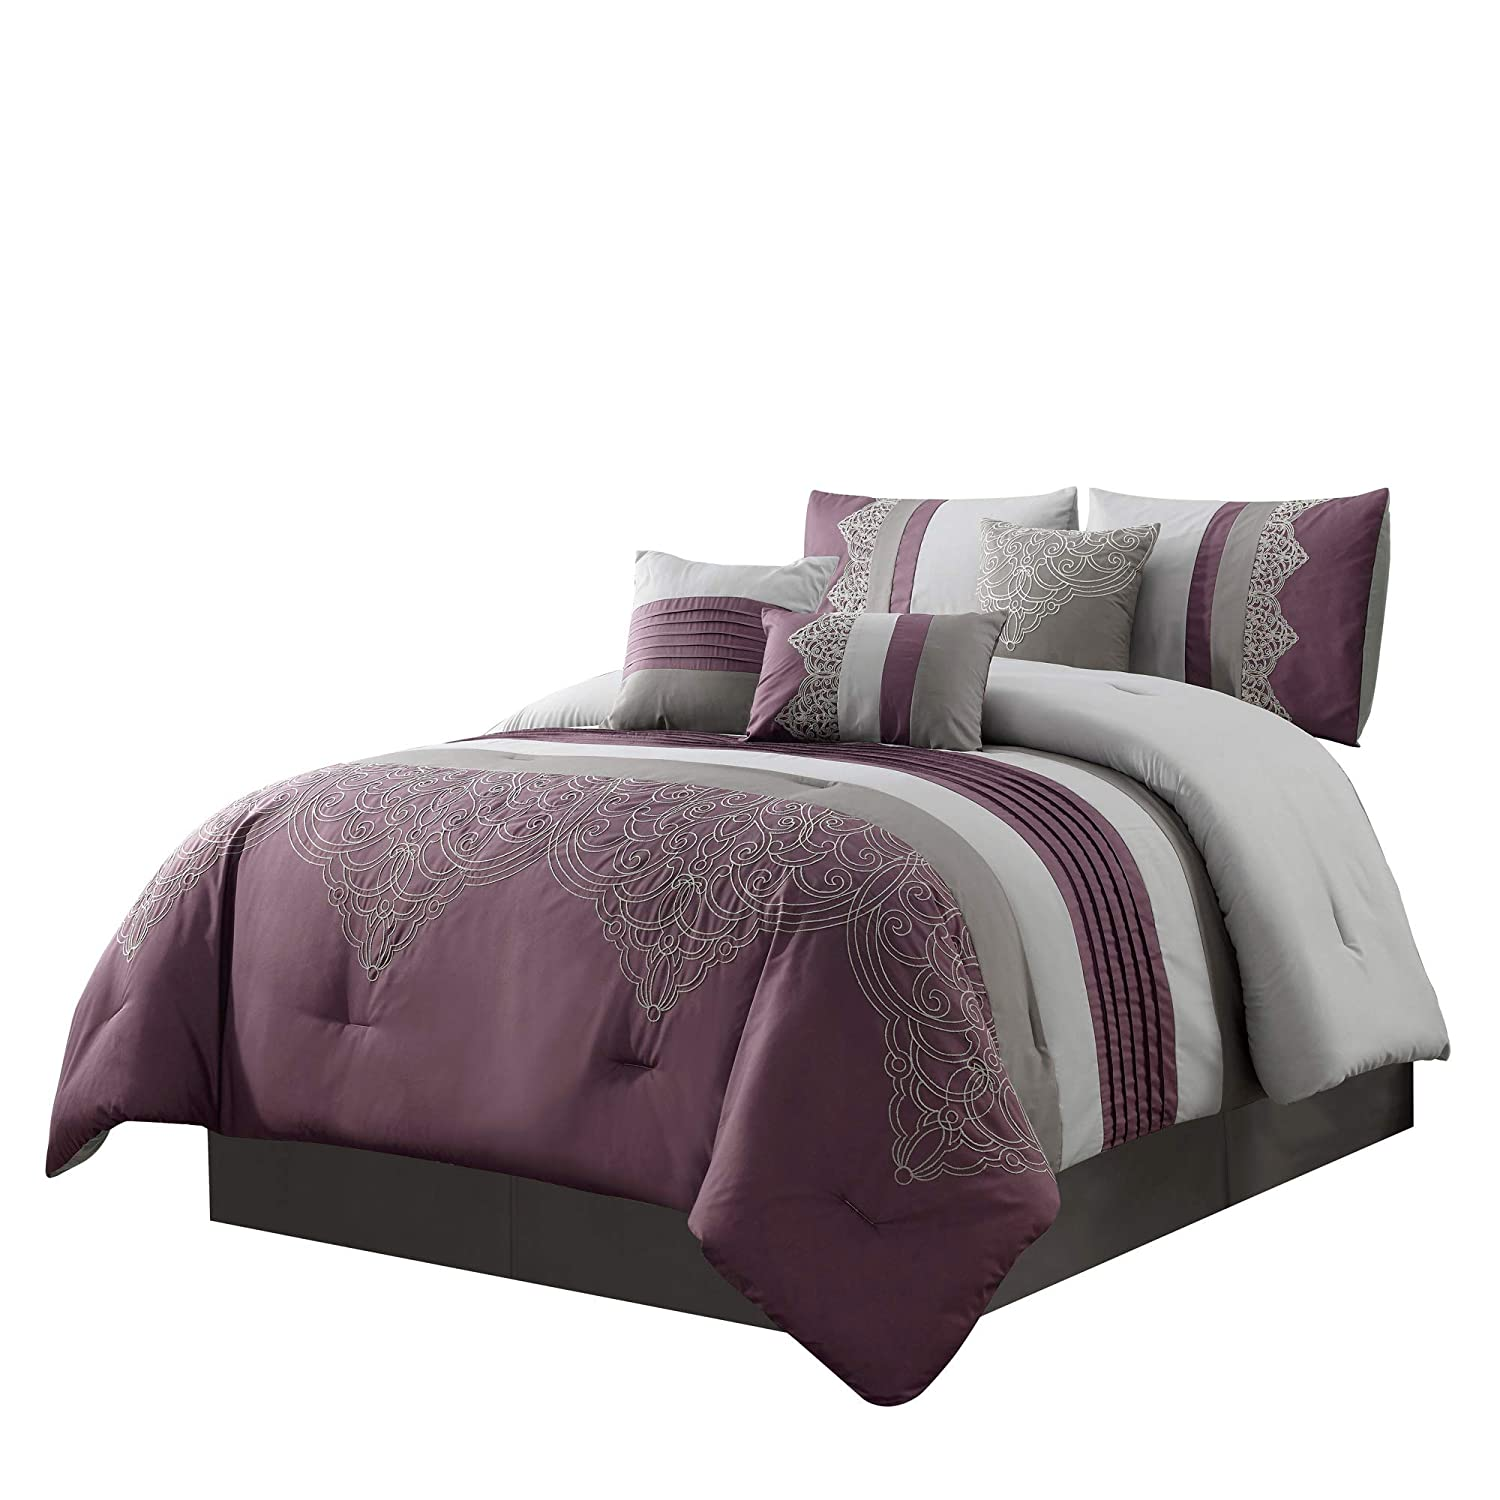 Chezmoi Collection Chloe 7-Piece Purple Gray Geometric Embroidery Pleated Striped Comforter Set, Queen